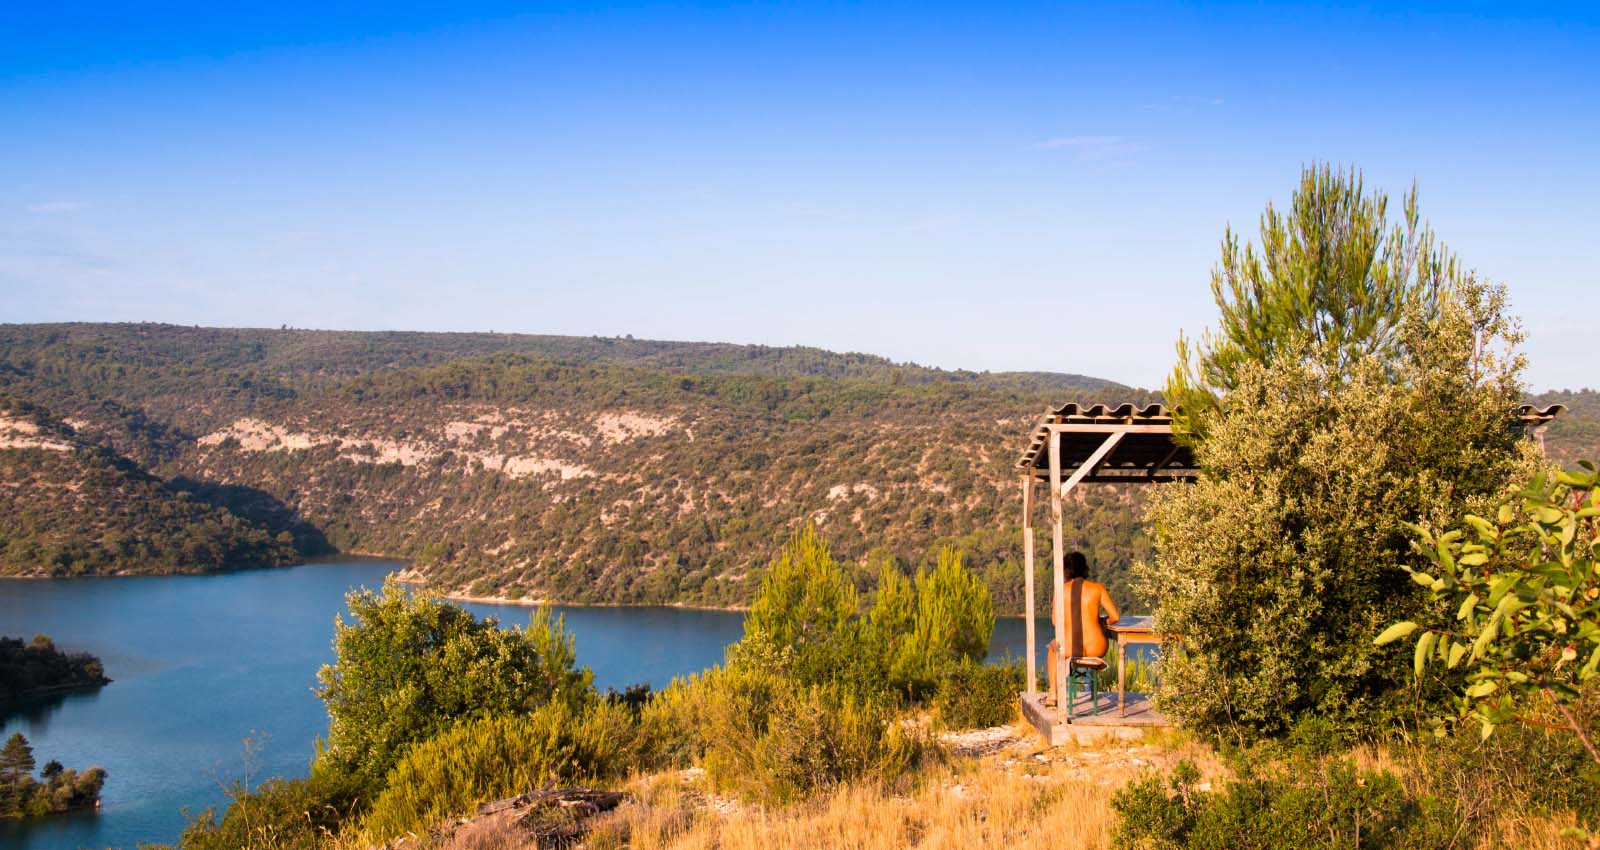 9 Naturist Campings in Europe for less than 30 Euros per Night